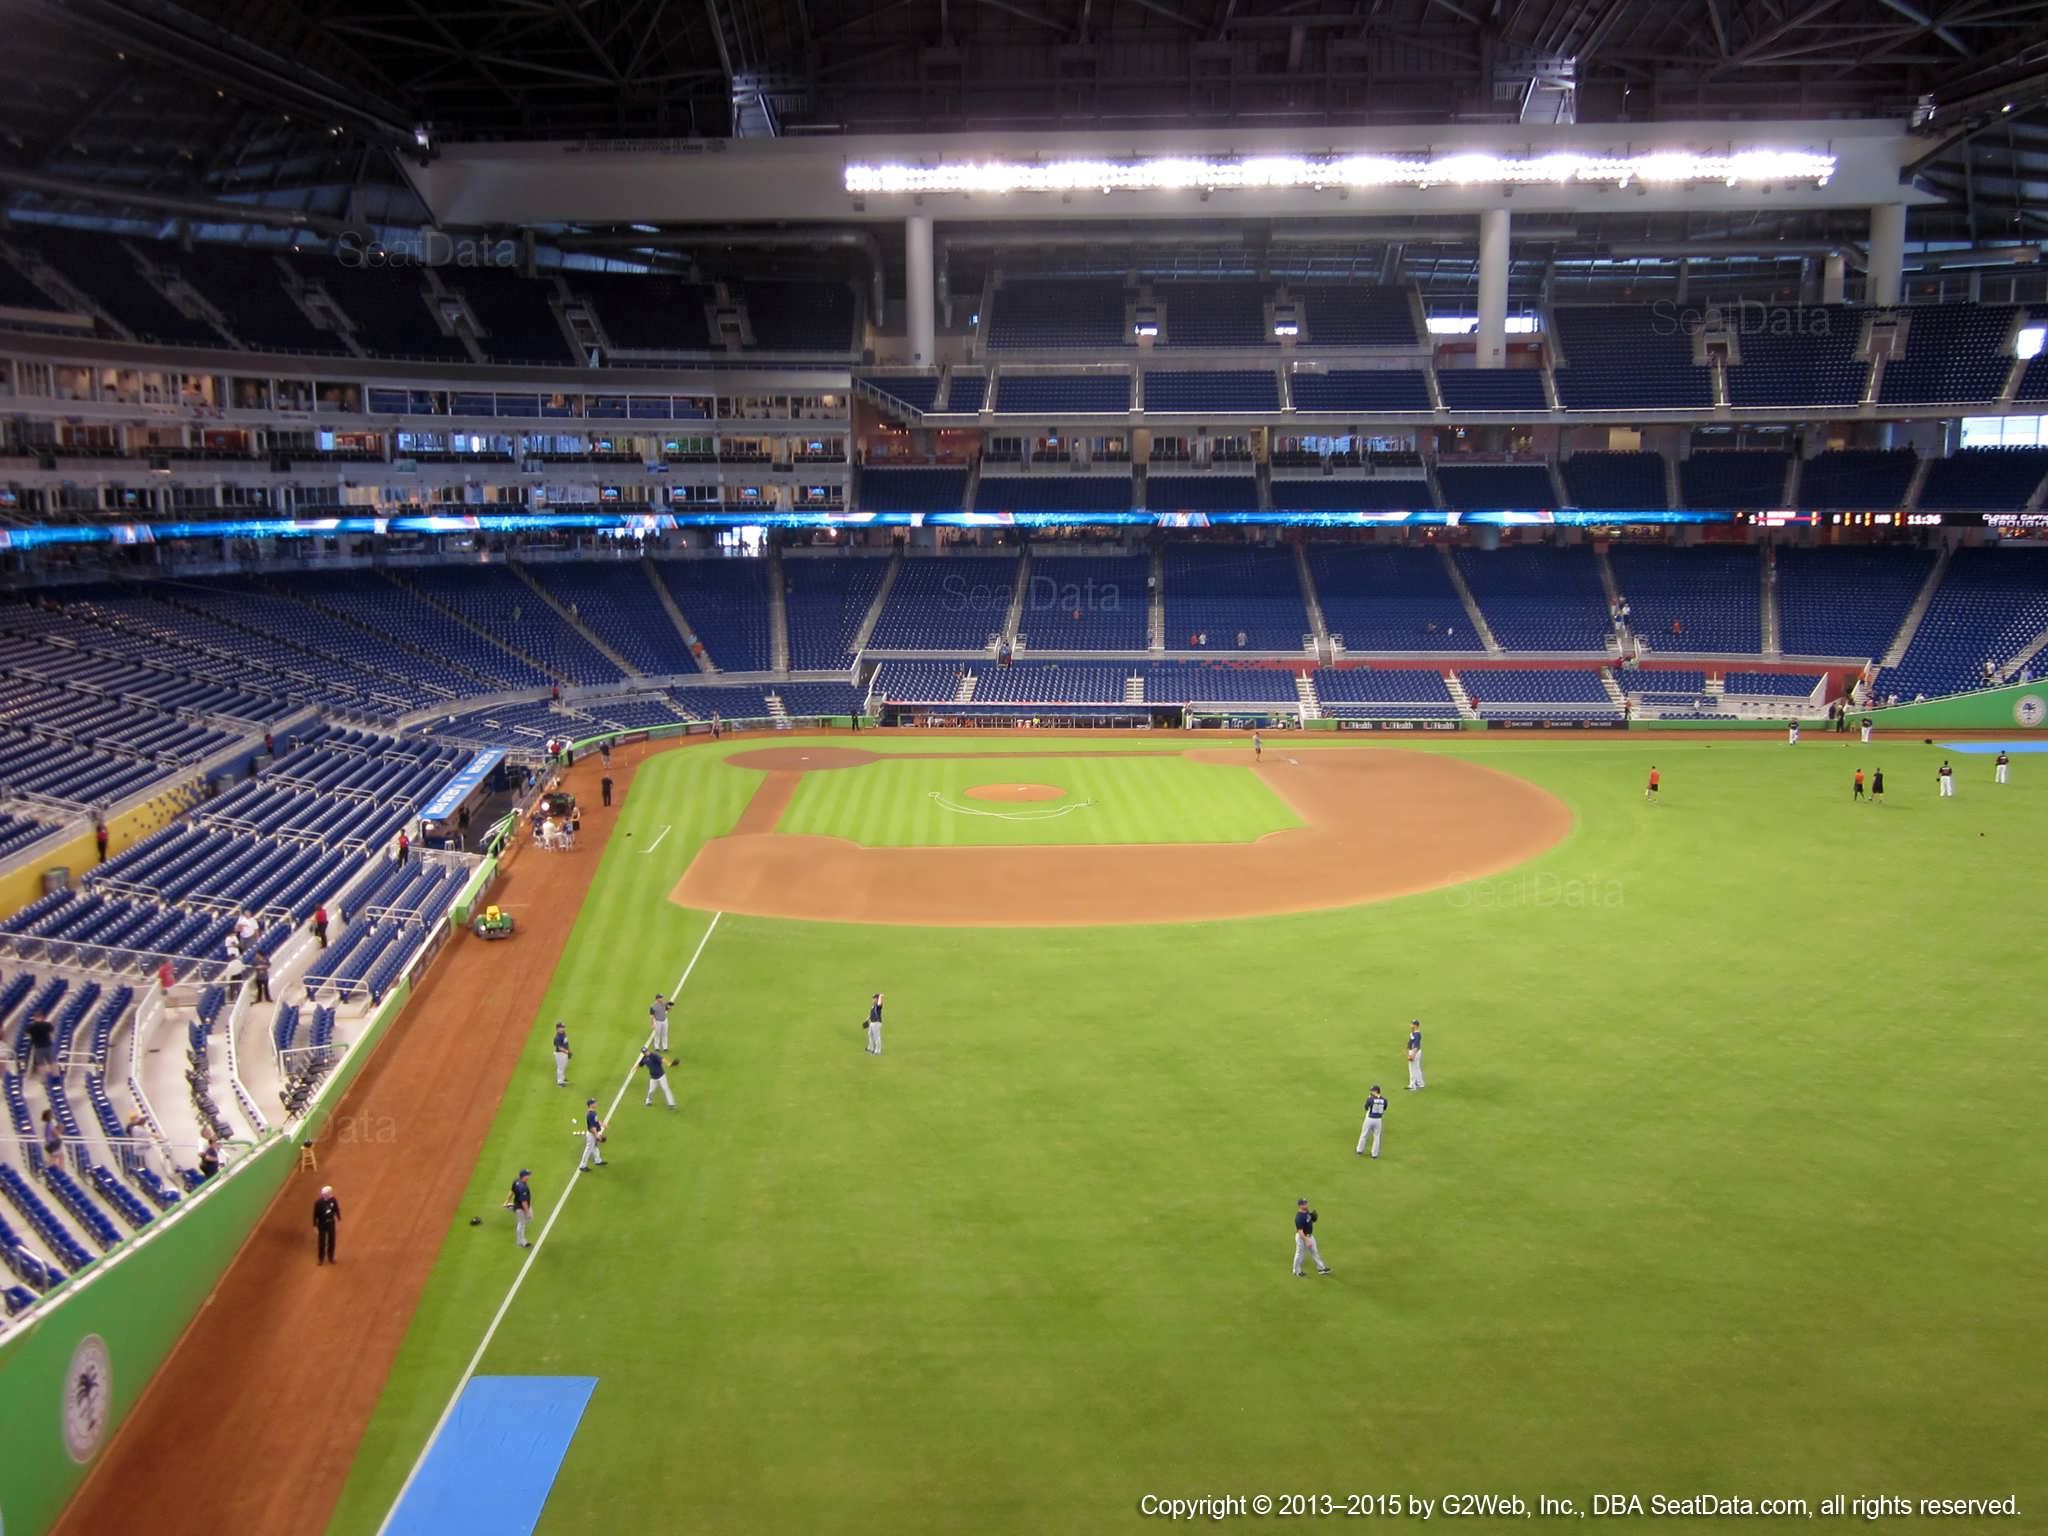 Seat view from section 141 at Marlins Park, home of the Miami Marlins